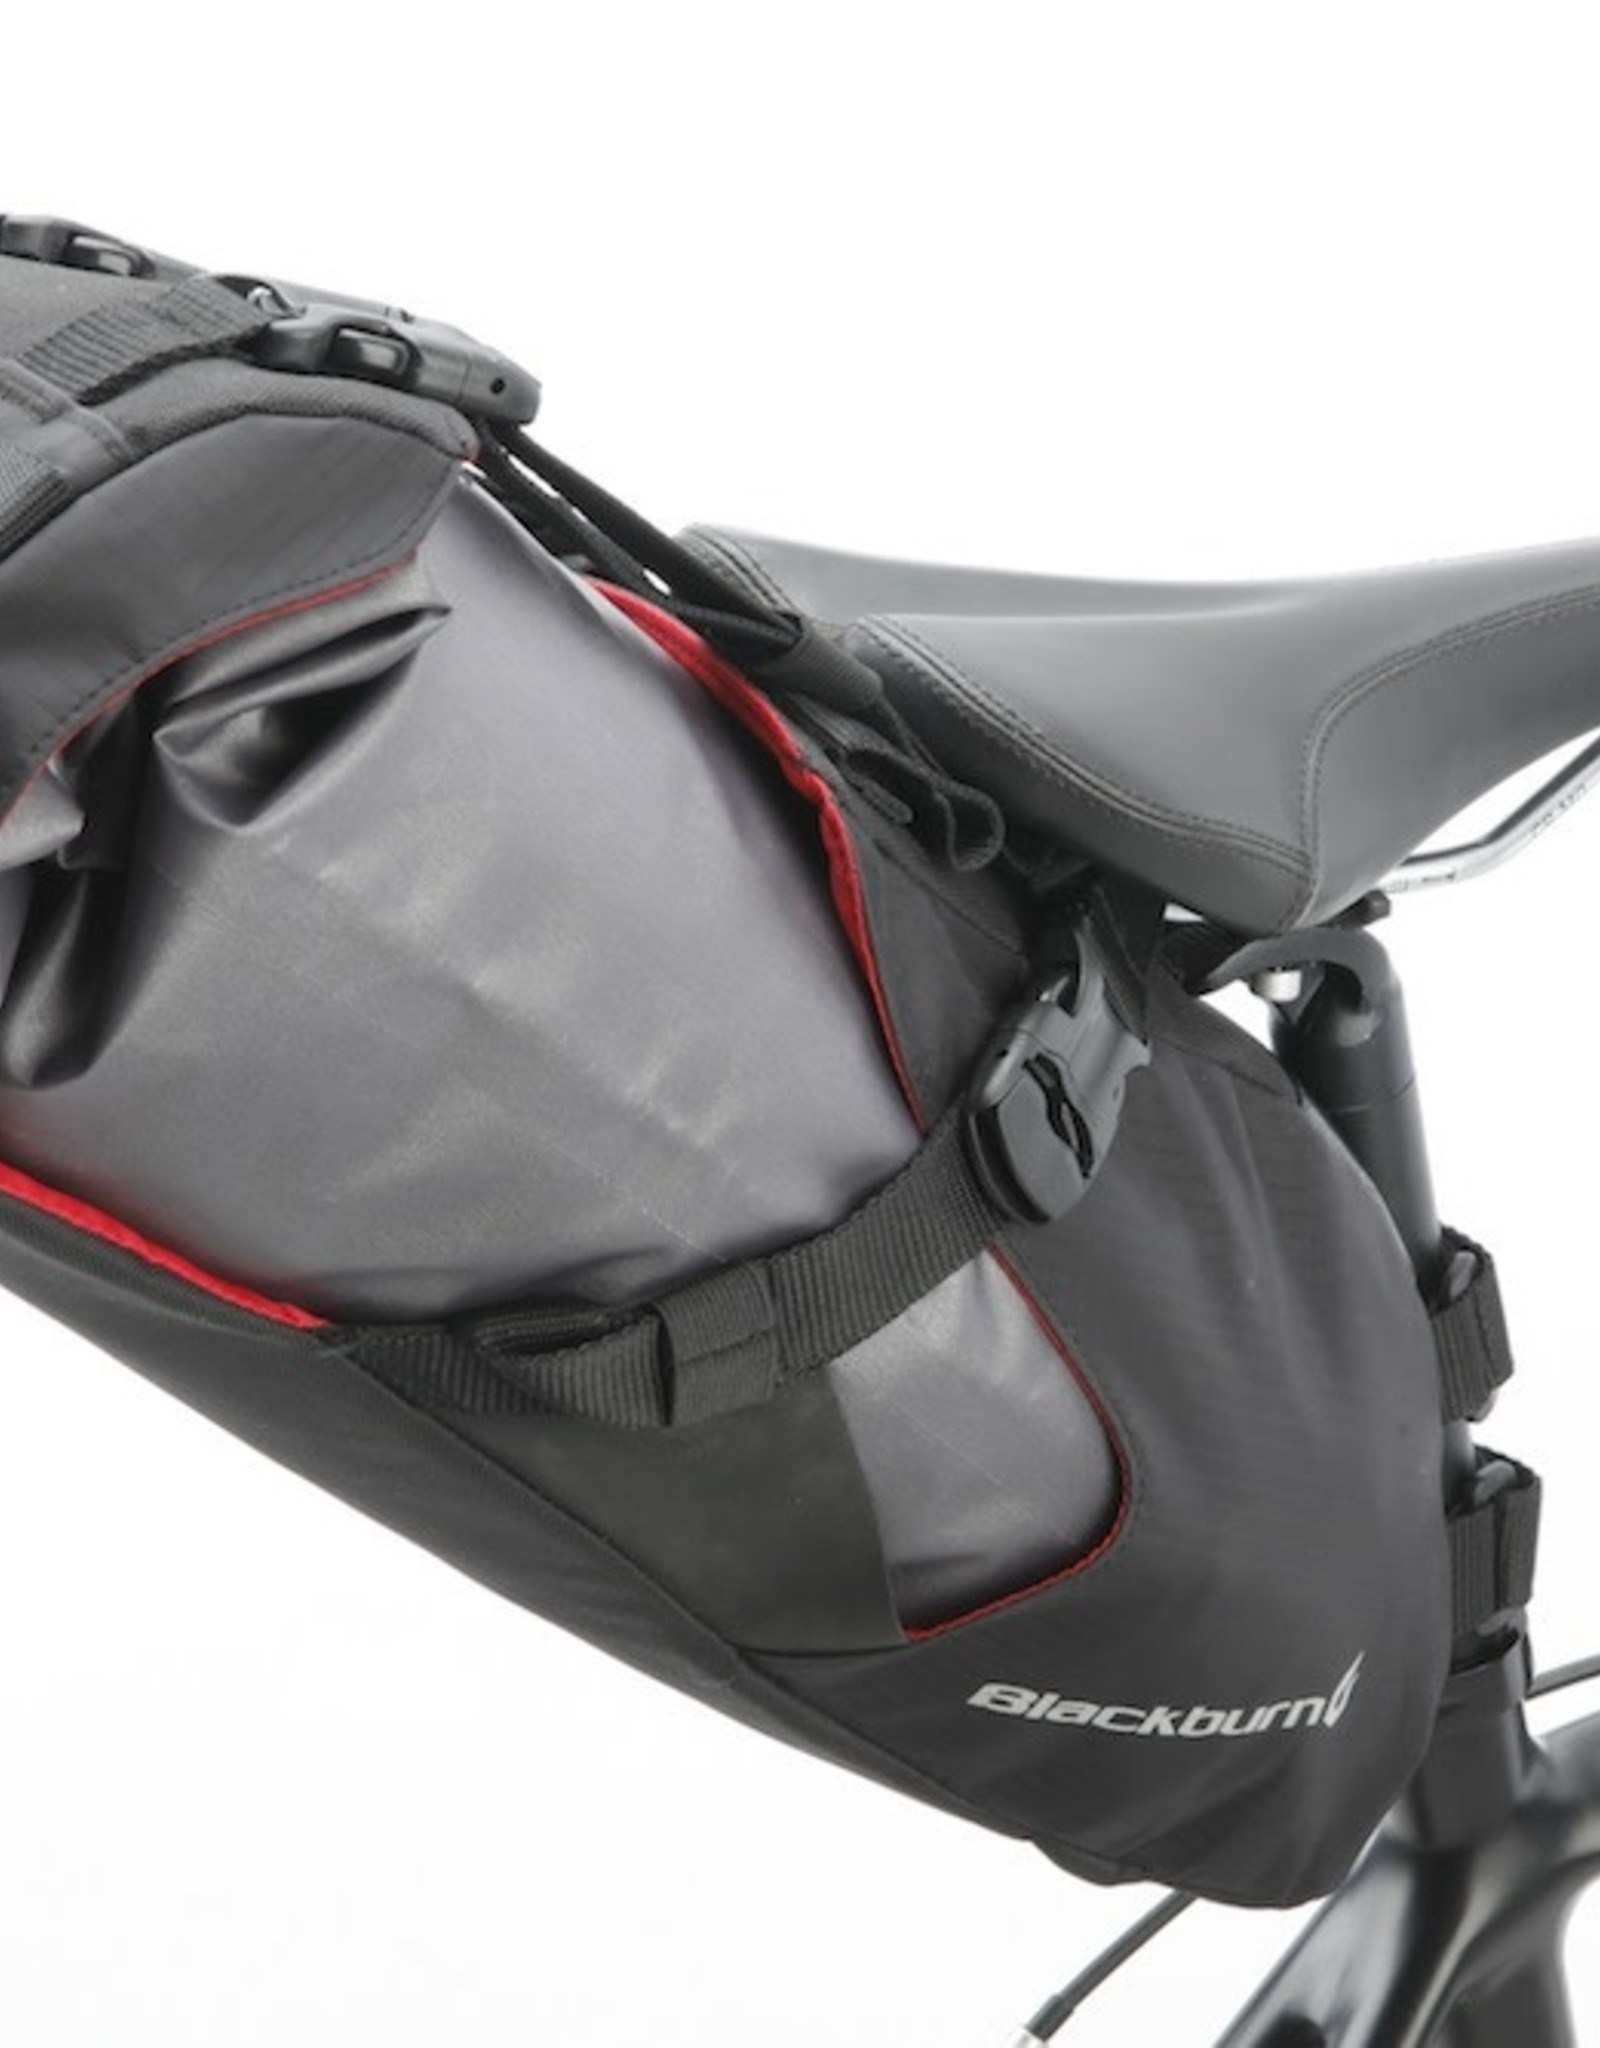 Blackburn BLACKBURN Bag OUTPOST SEAT PACK